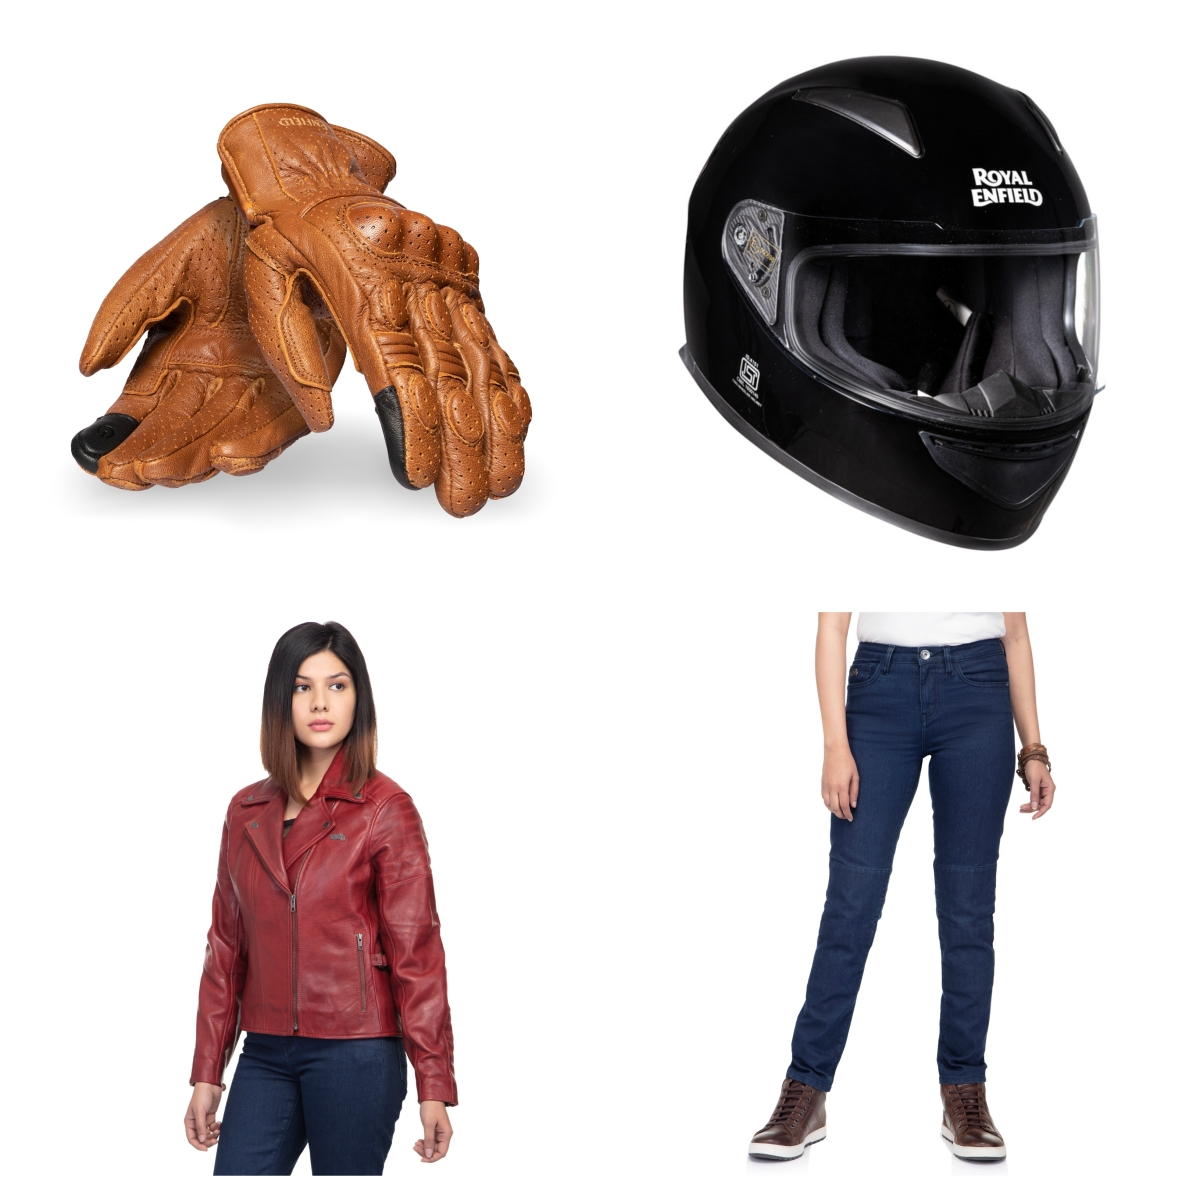 Some of the products from Royal Enfield's Apparel for women collection